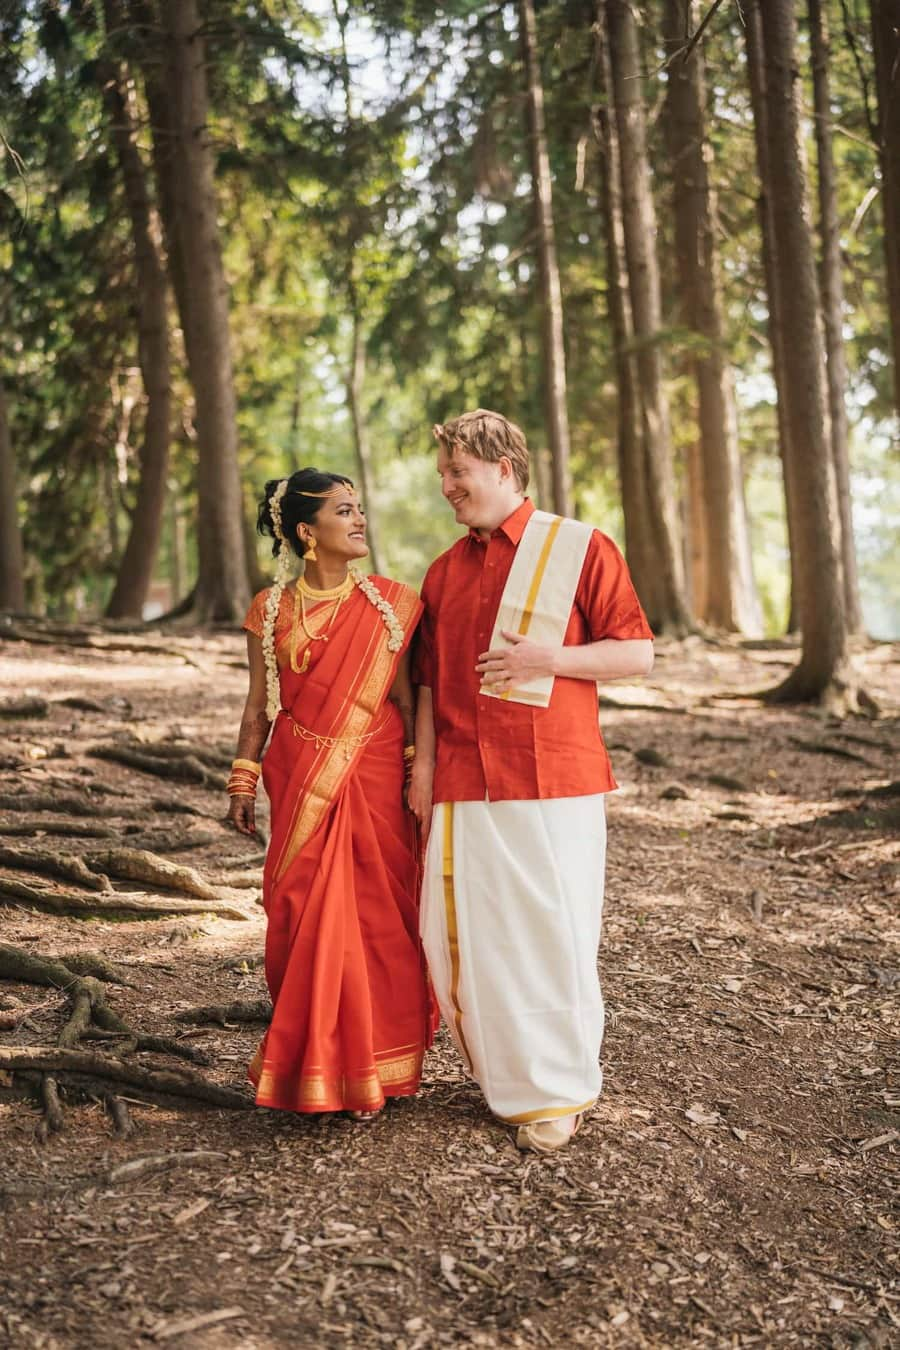 Indian Bride and groom holds hands and walk together through Hudson Valley forest.